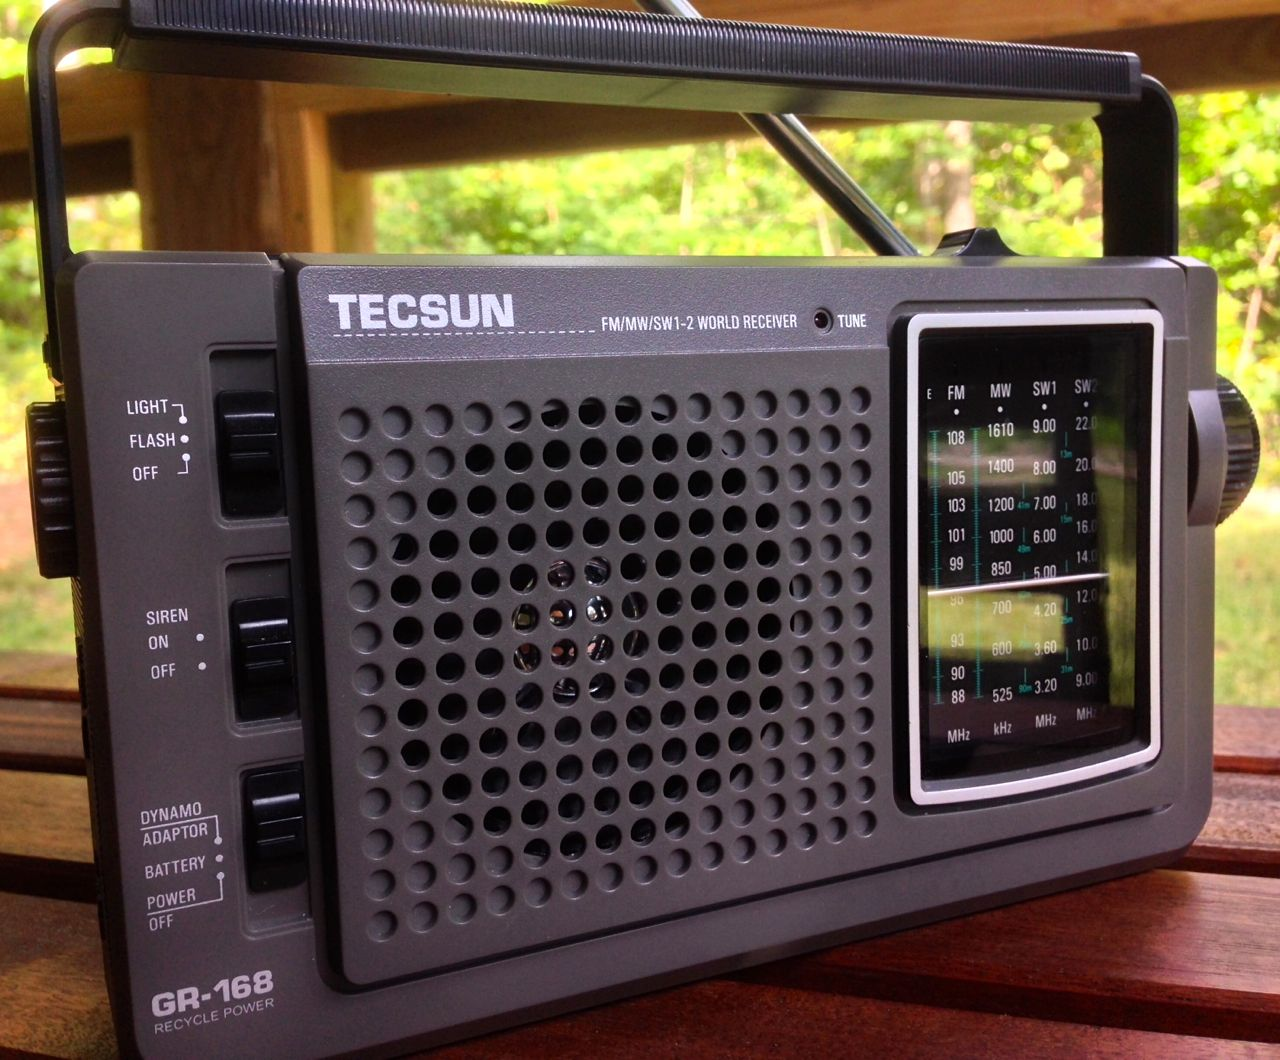 best am radio with Living Off Grid The Ideal Shortwave Radio System For You on Feature Year 1973 10am Et likewise Paula Kalenberg as well Clear Channel Changes Its Name To Iheartmedia as well Freizeitreiter Turnier Reitverein Ulmtal Ev Im Mai 7335 likewise .